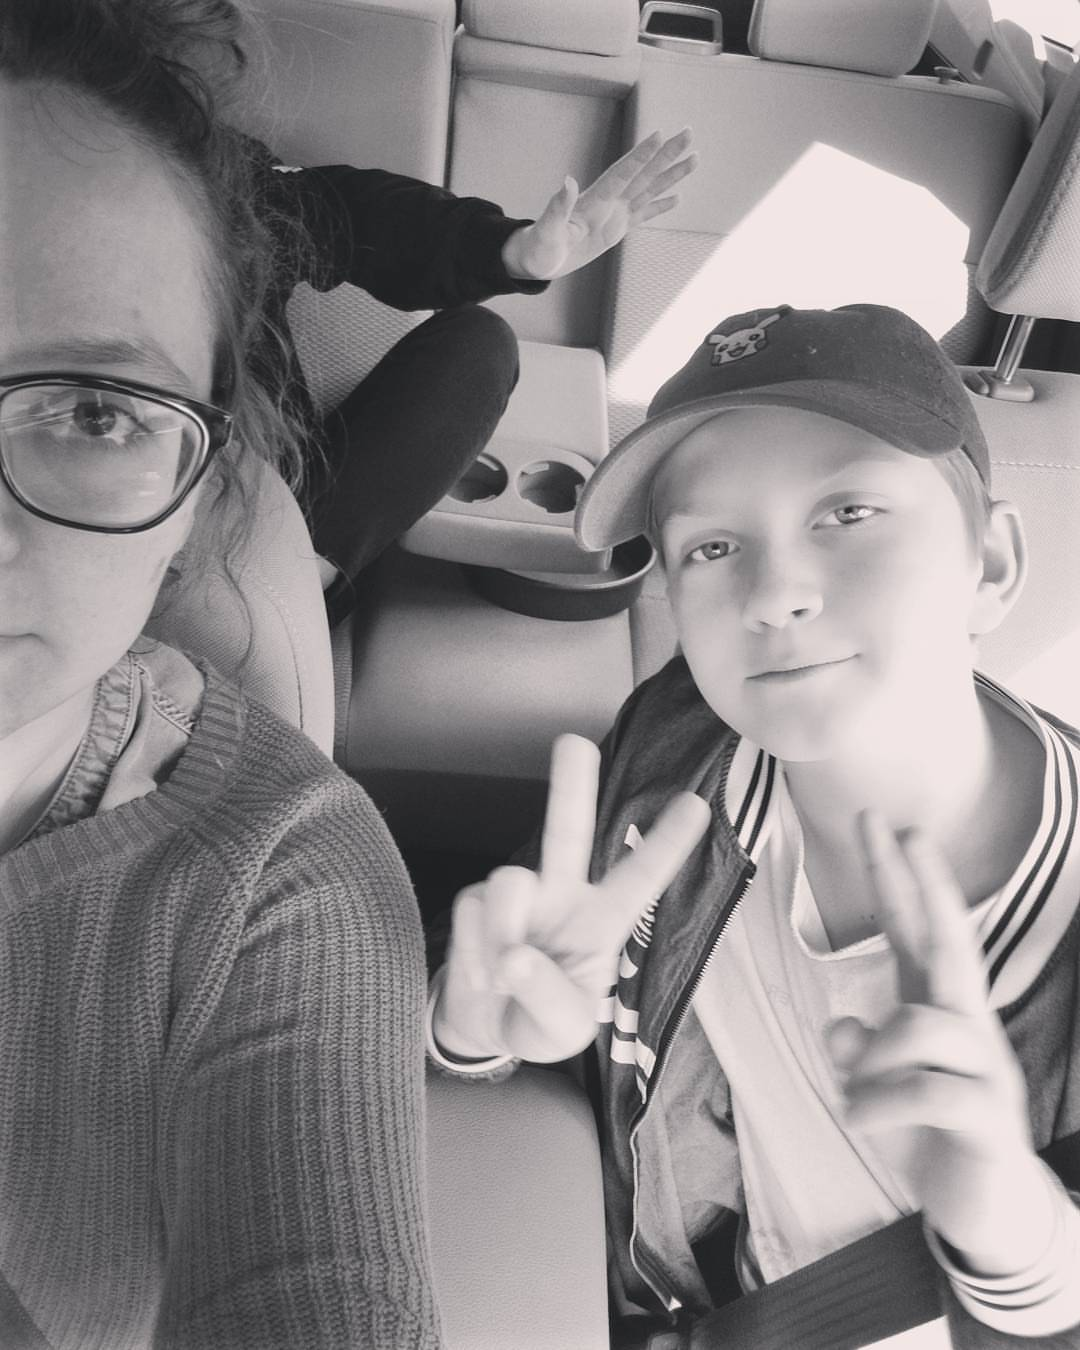 This is what the day before a fiber festival looks like. We're all puffy eyes and tired, big sis will only show us her hand, and we make last minute runs to the hardware store to prep. Just realized tomorrow marks a full year of me doing trade shows and fiber festivals. Can't wait to see everyone tomorrow at @fiberintheboro and then also can't wait to see @mybrothermybrotherandme tomorrow night, after a good day of work!!!